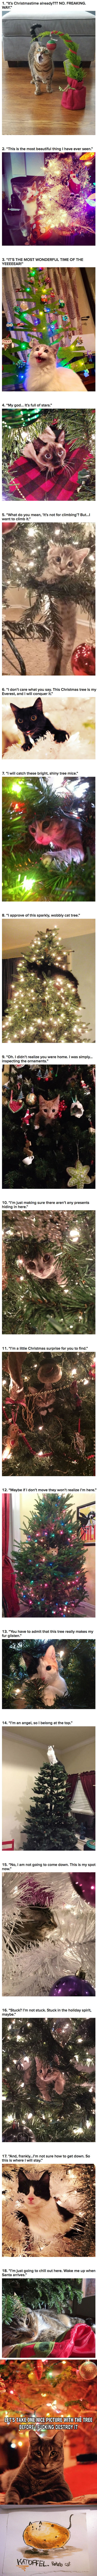 18 Cats Who Are Really, Really Excited About Christmas Trees